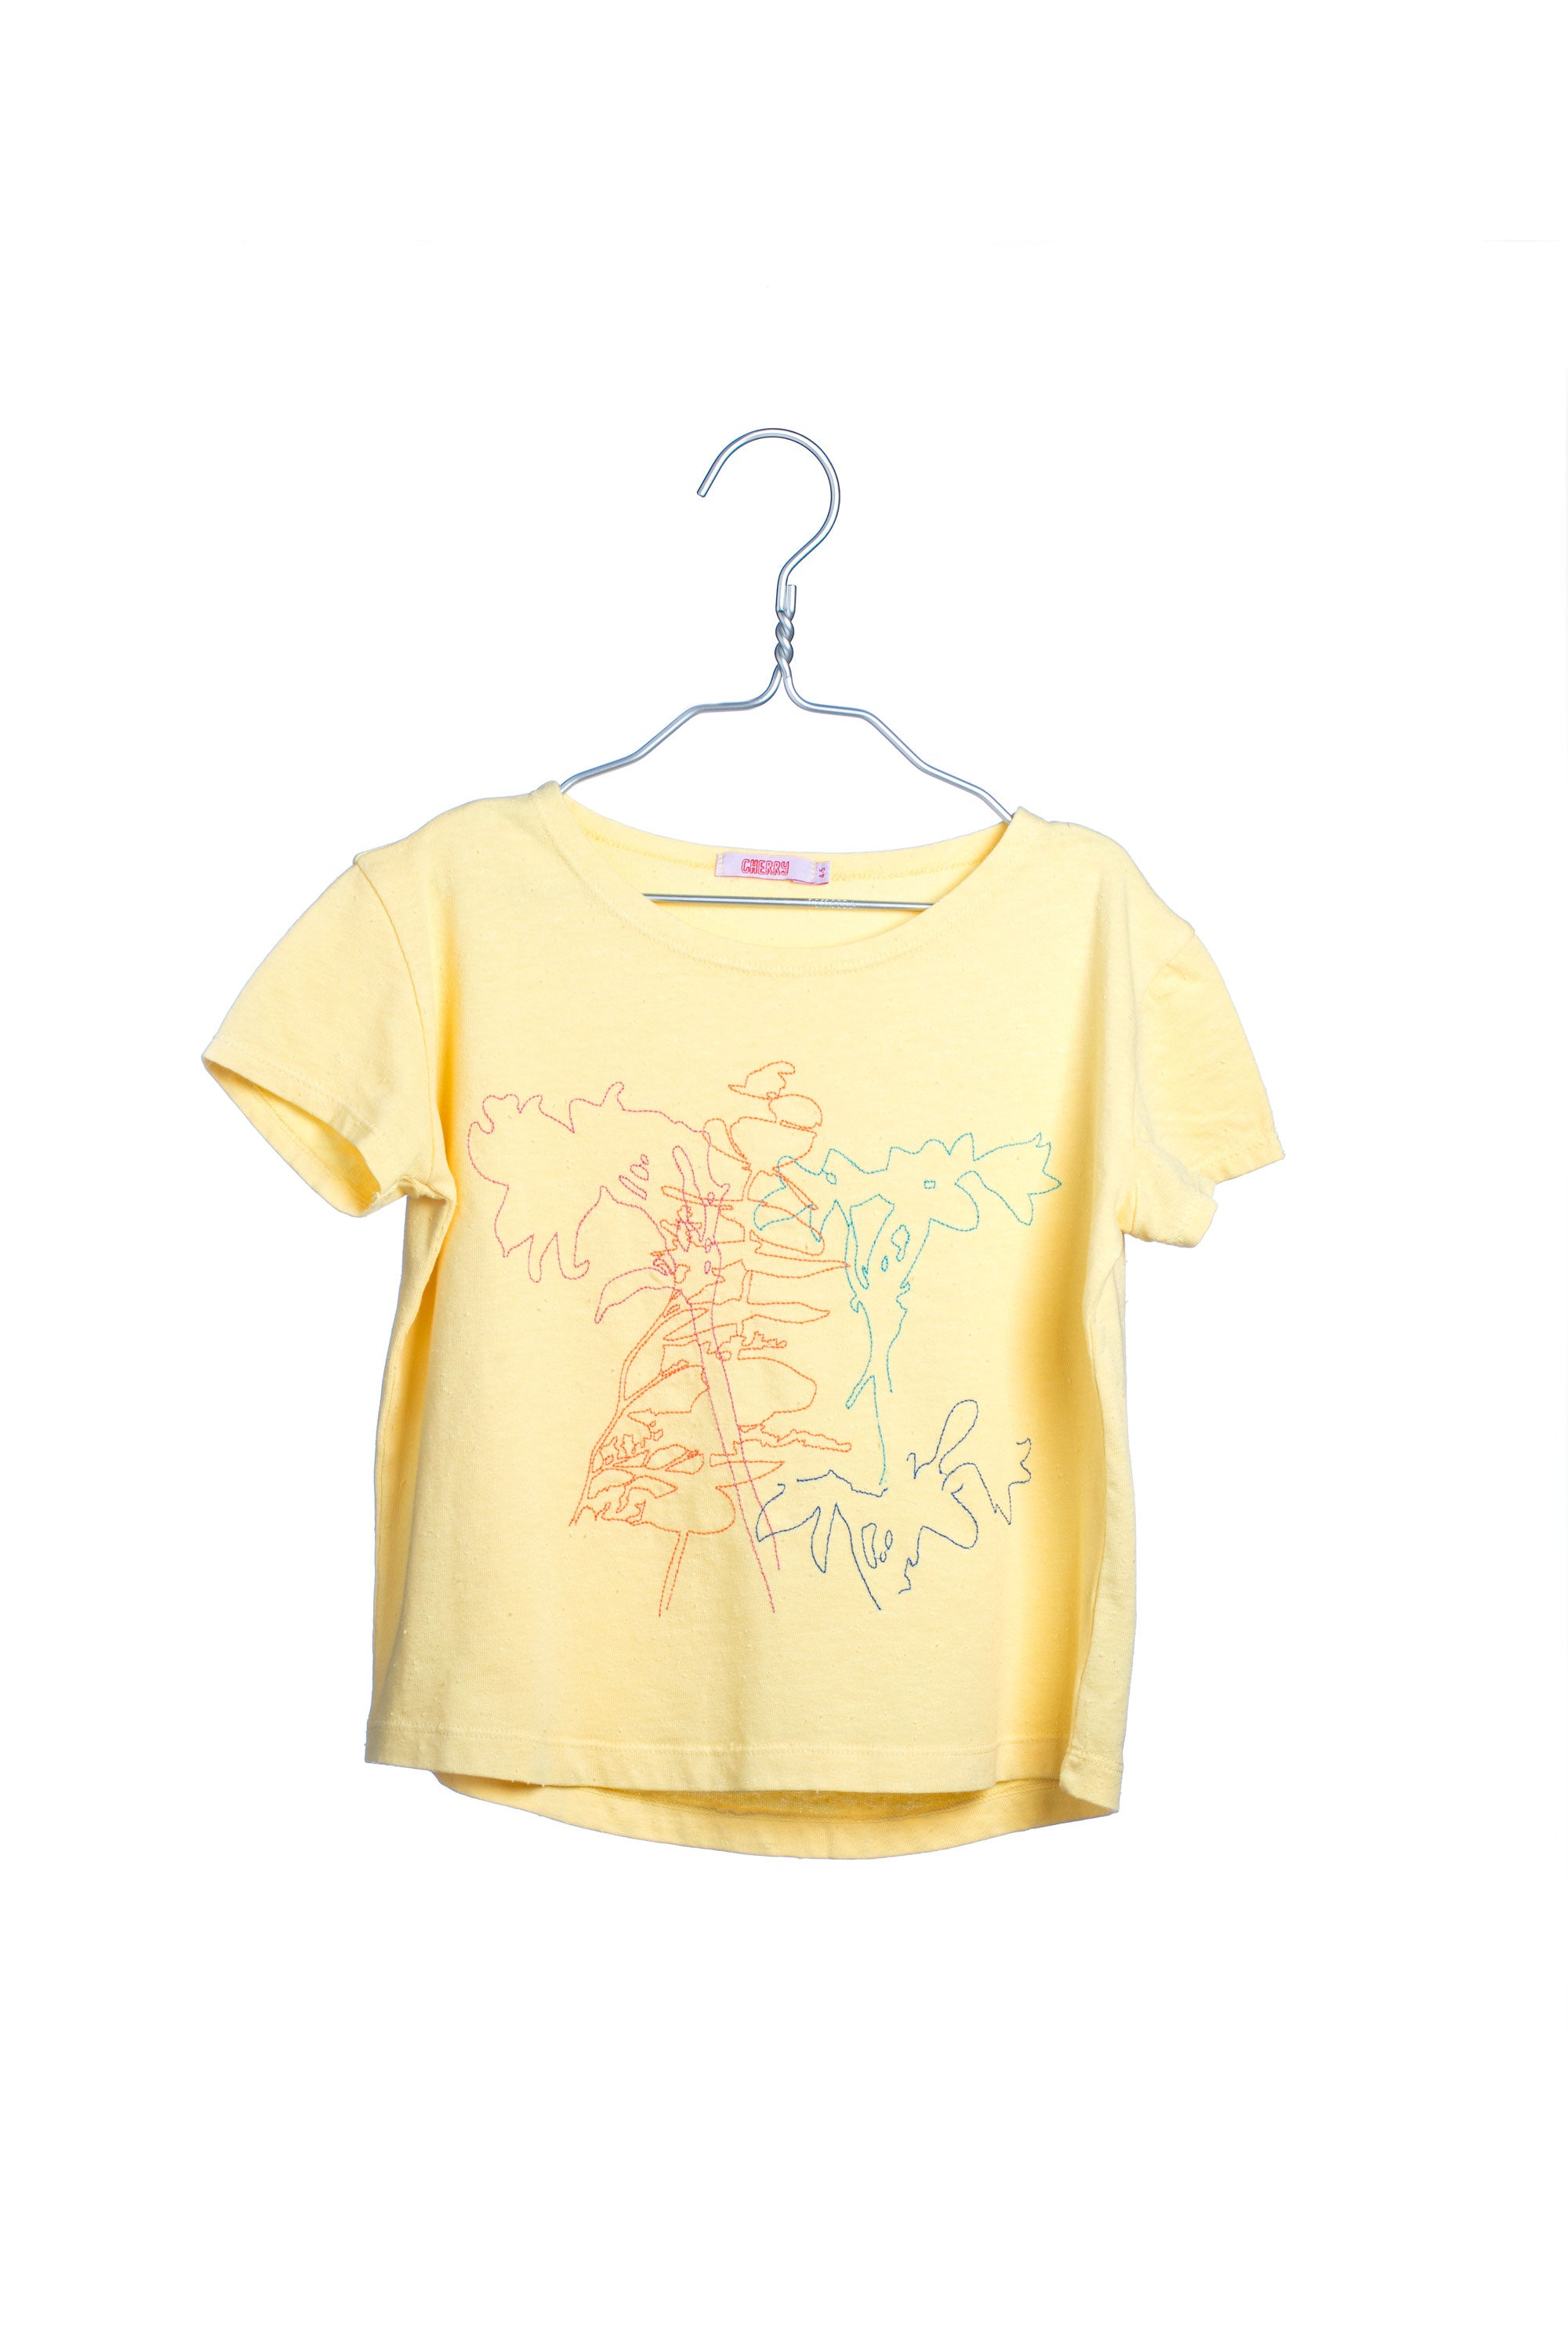 1715 Embroidered Flowers Tee - Yellow